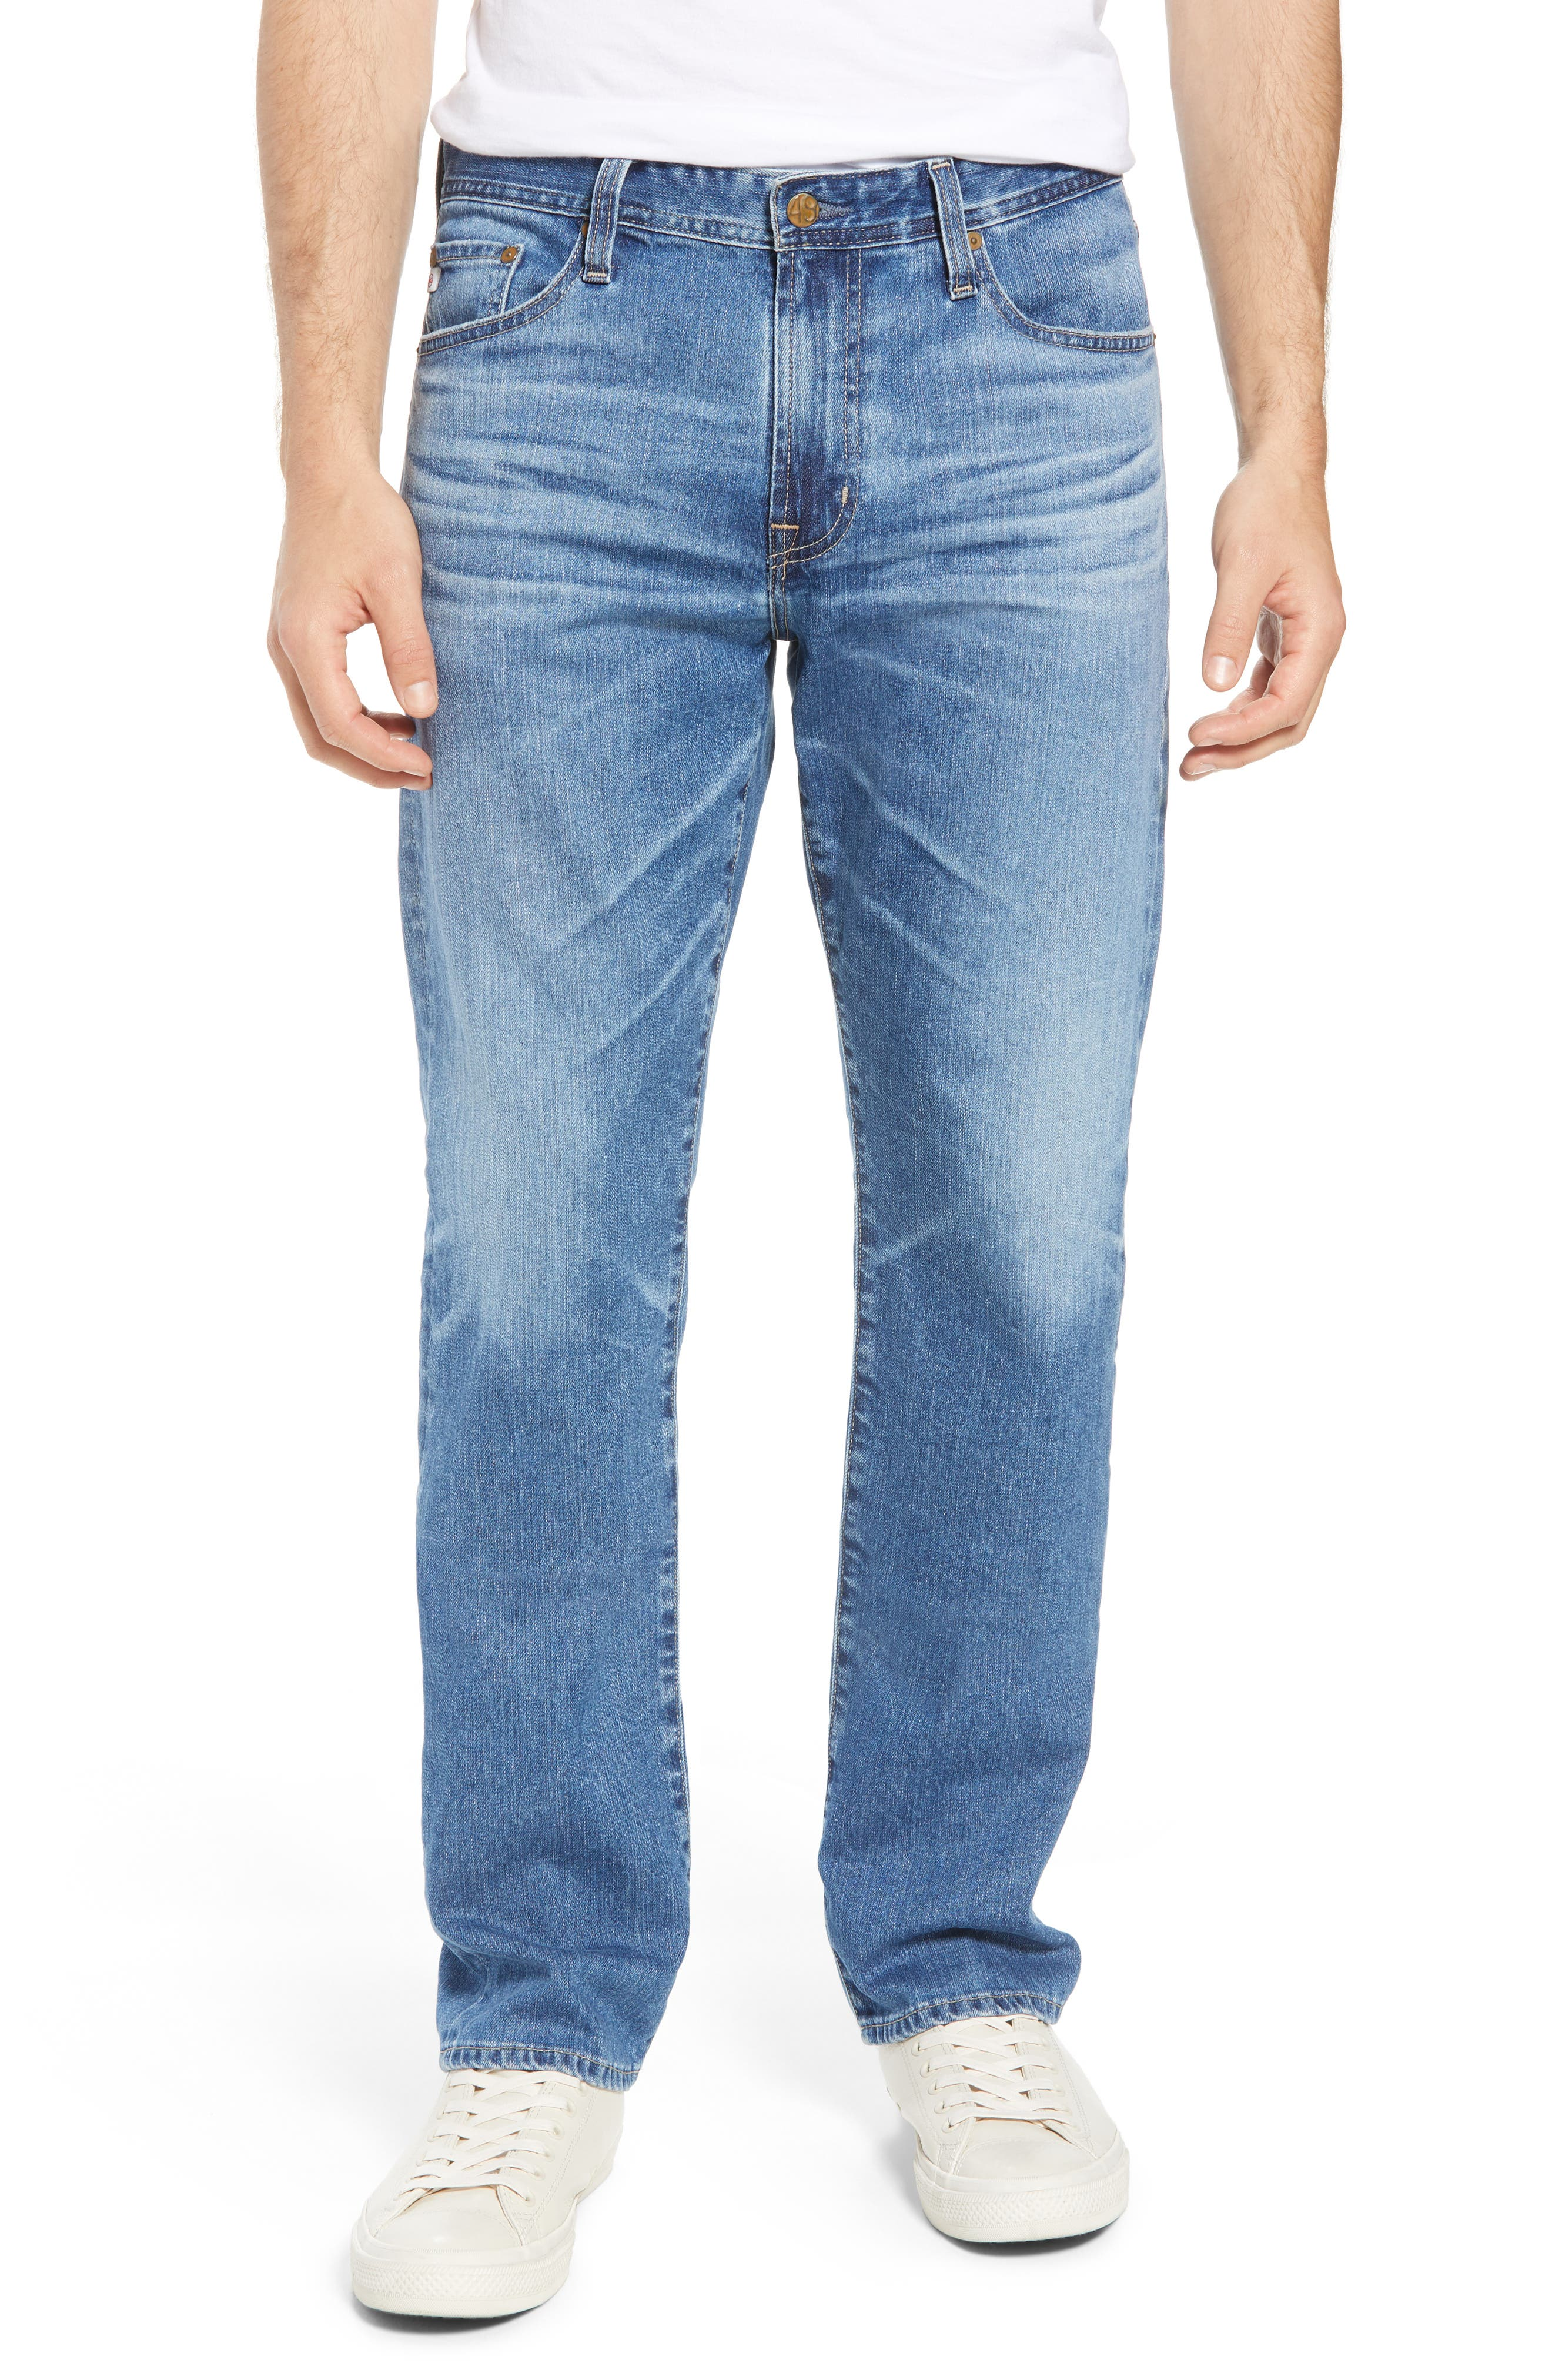 Everett Slim Straight Leg Jeans,                         Main,                         color, 15 YEARS OPEN ROAD